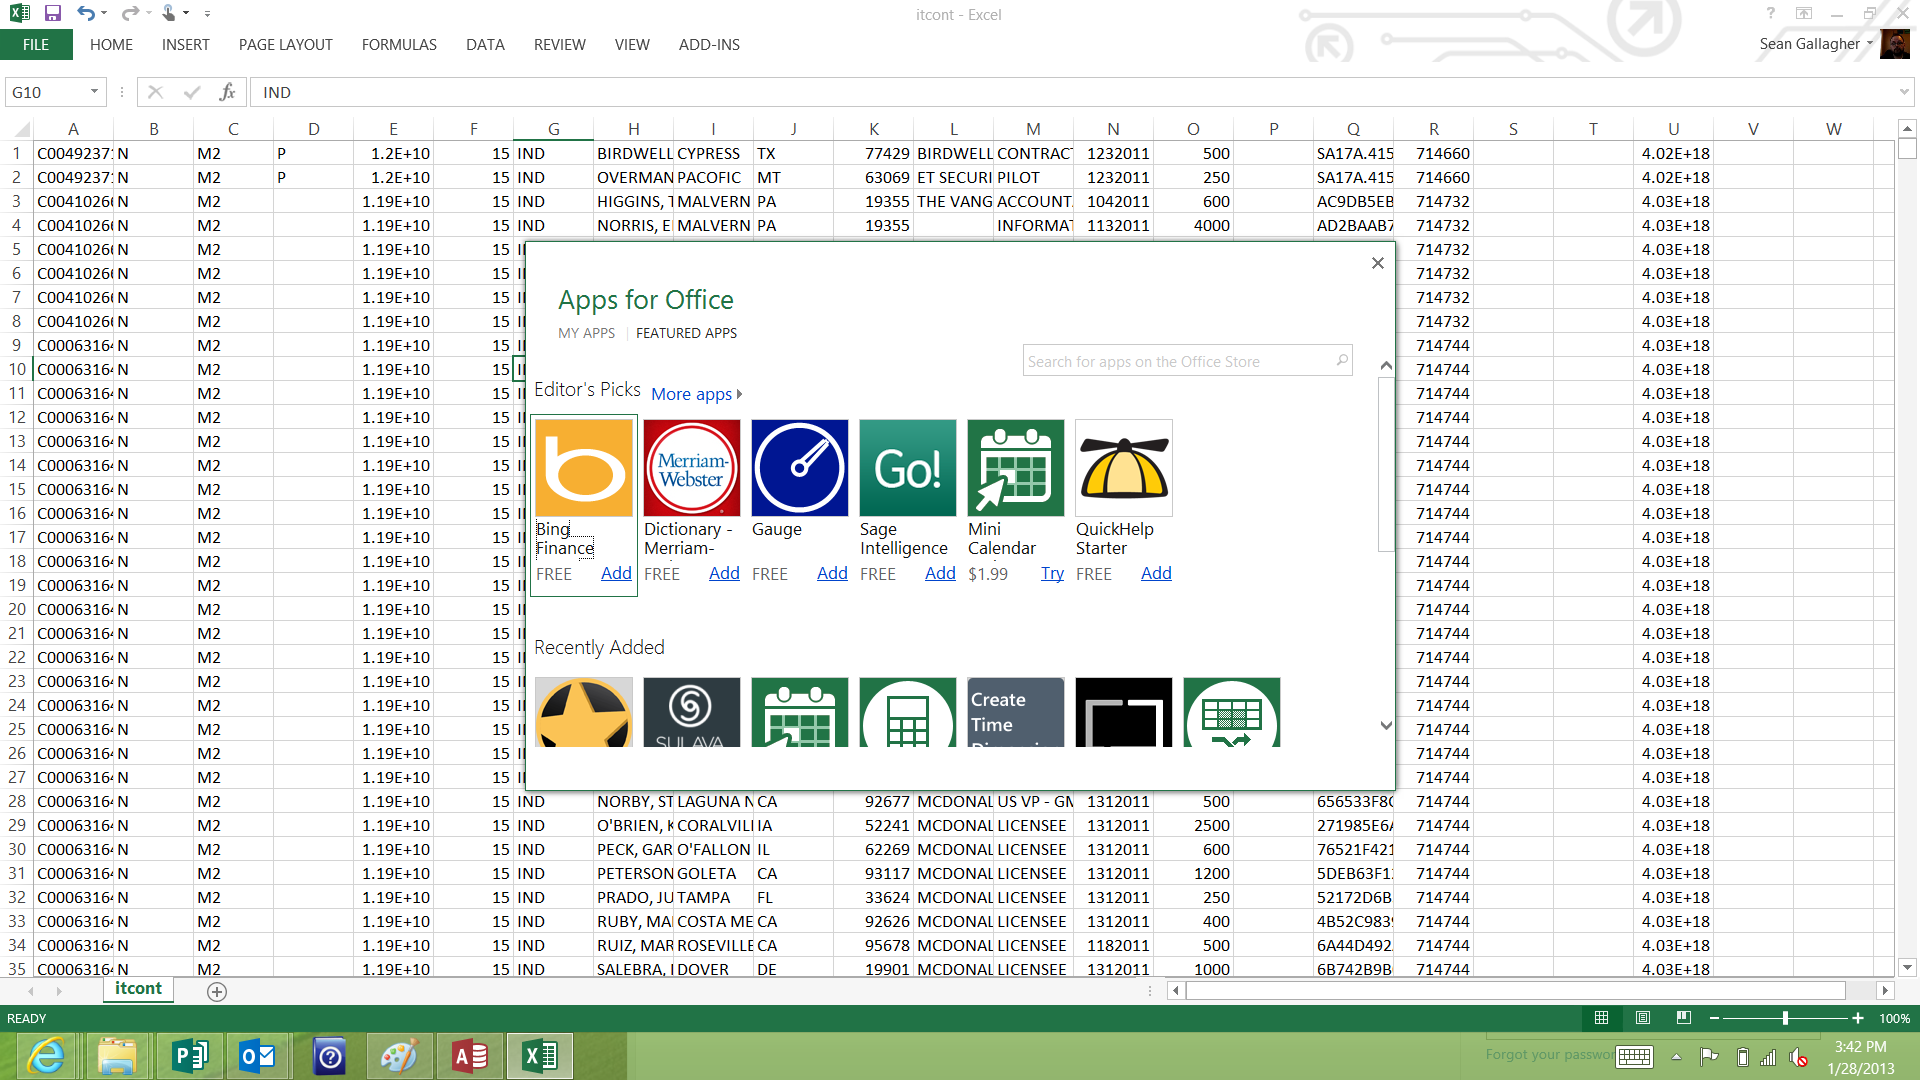 A view of the Apps for Office app store within Microsoft Excel.